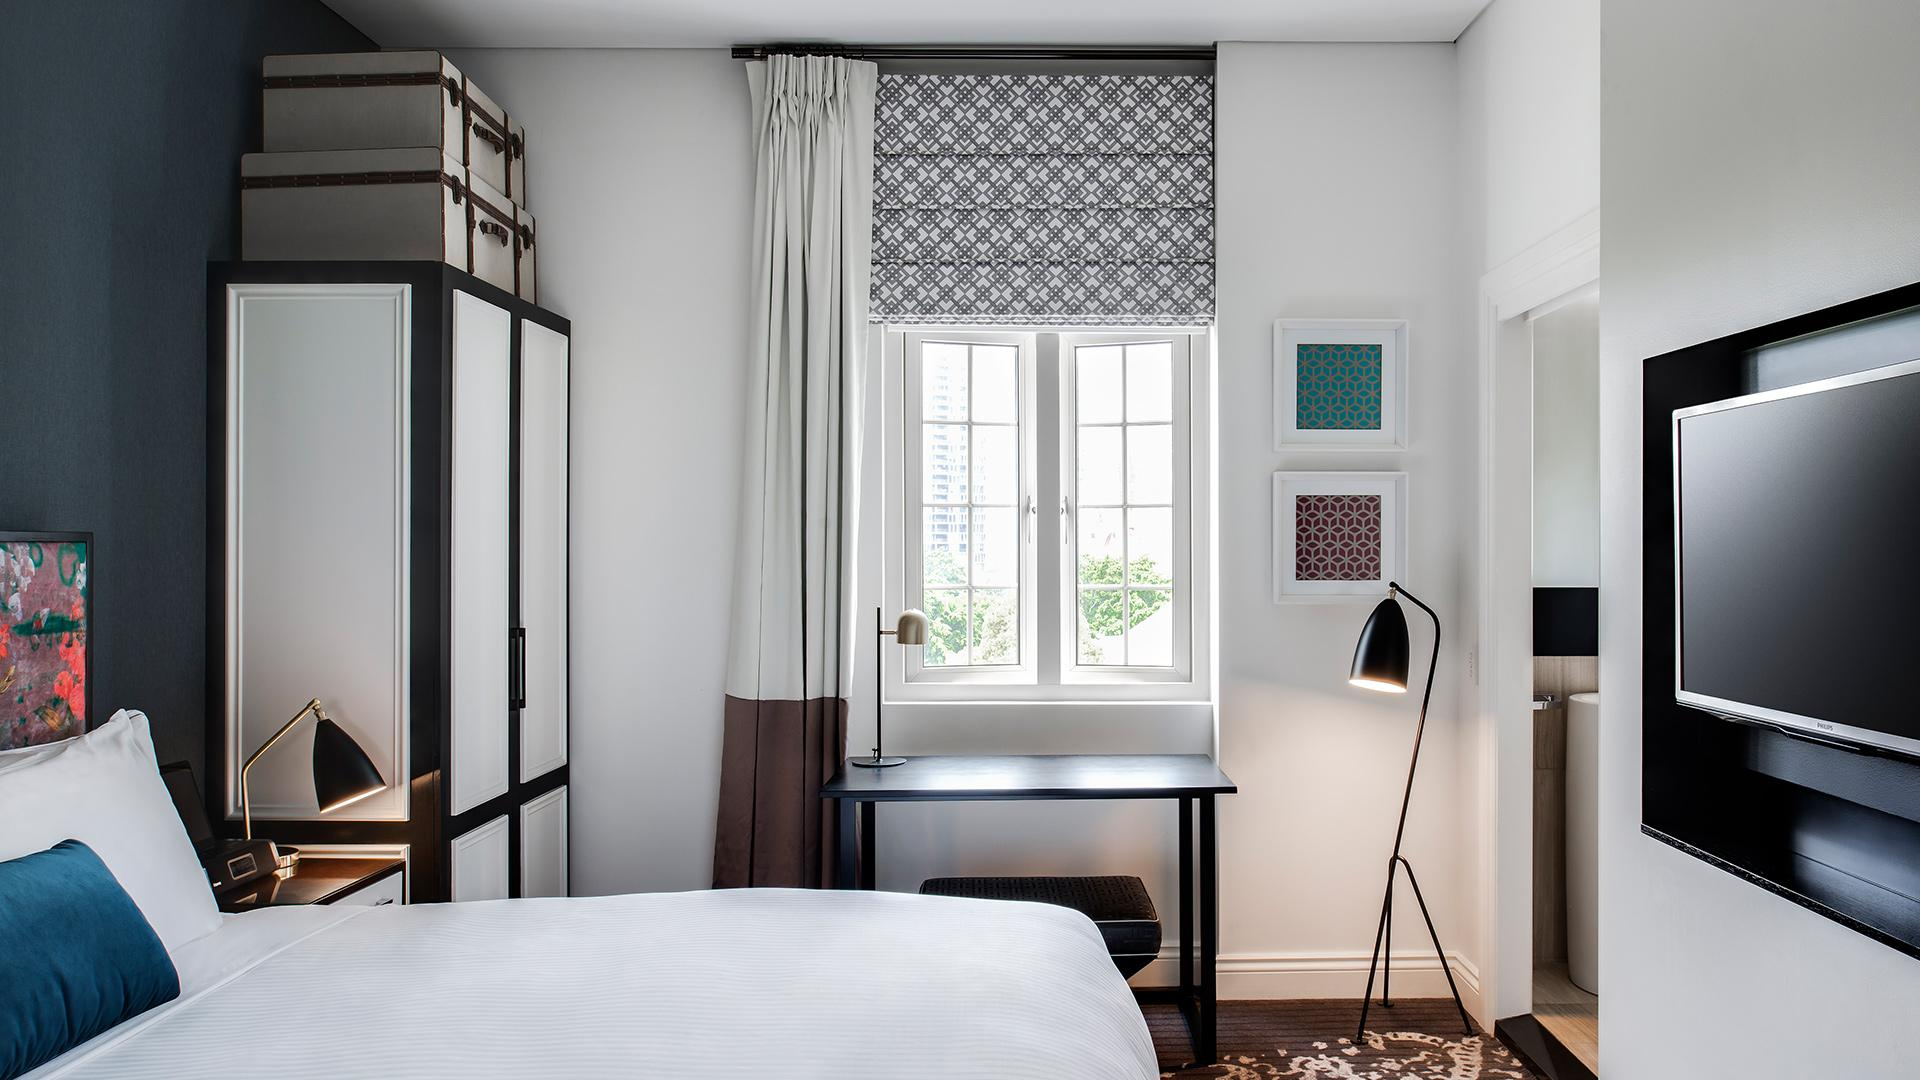 Heritage Suite image 1 at The Inchcolm by Ovolo by Brisbane City, Queensland, Australia